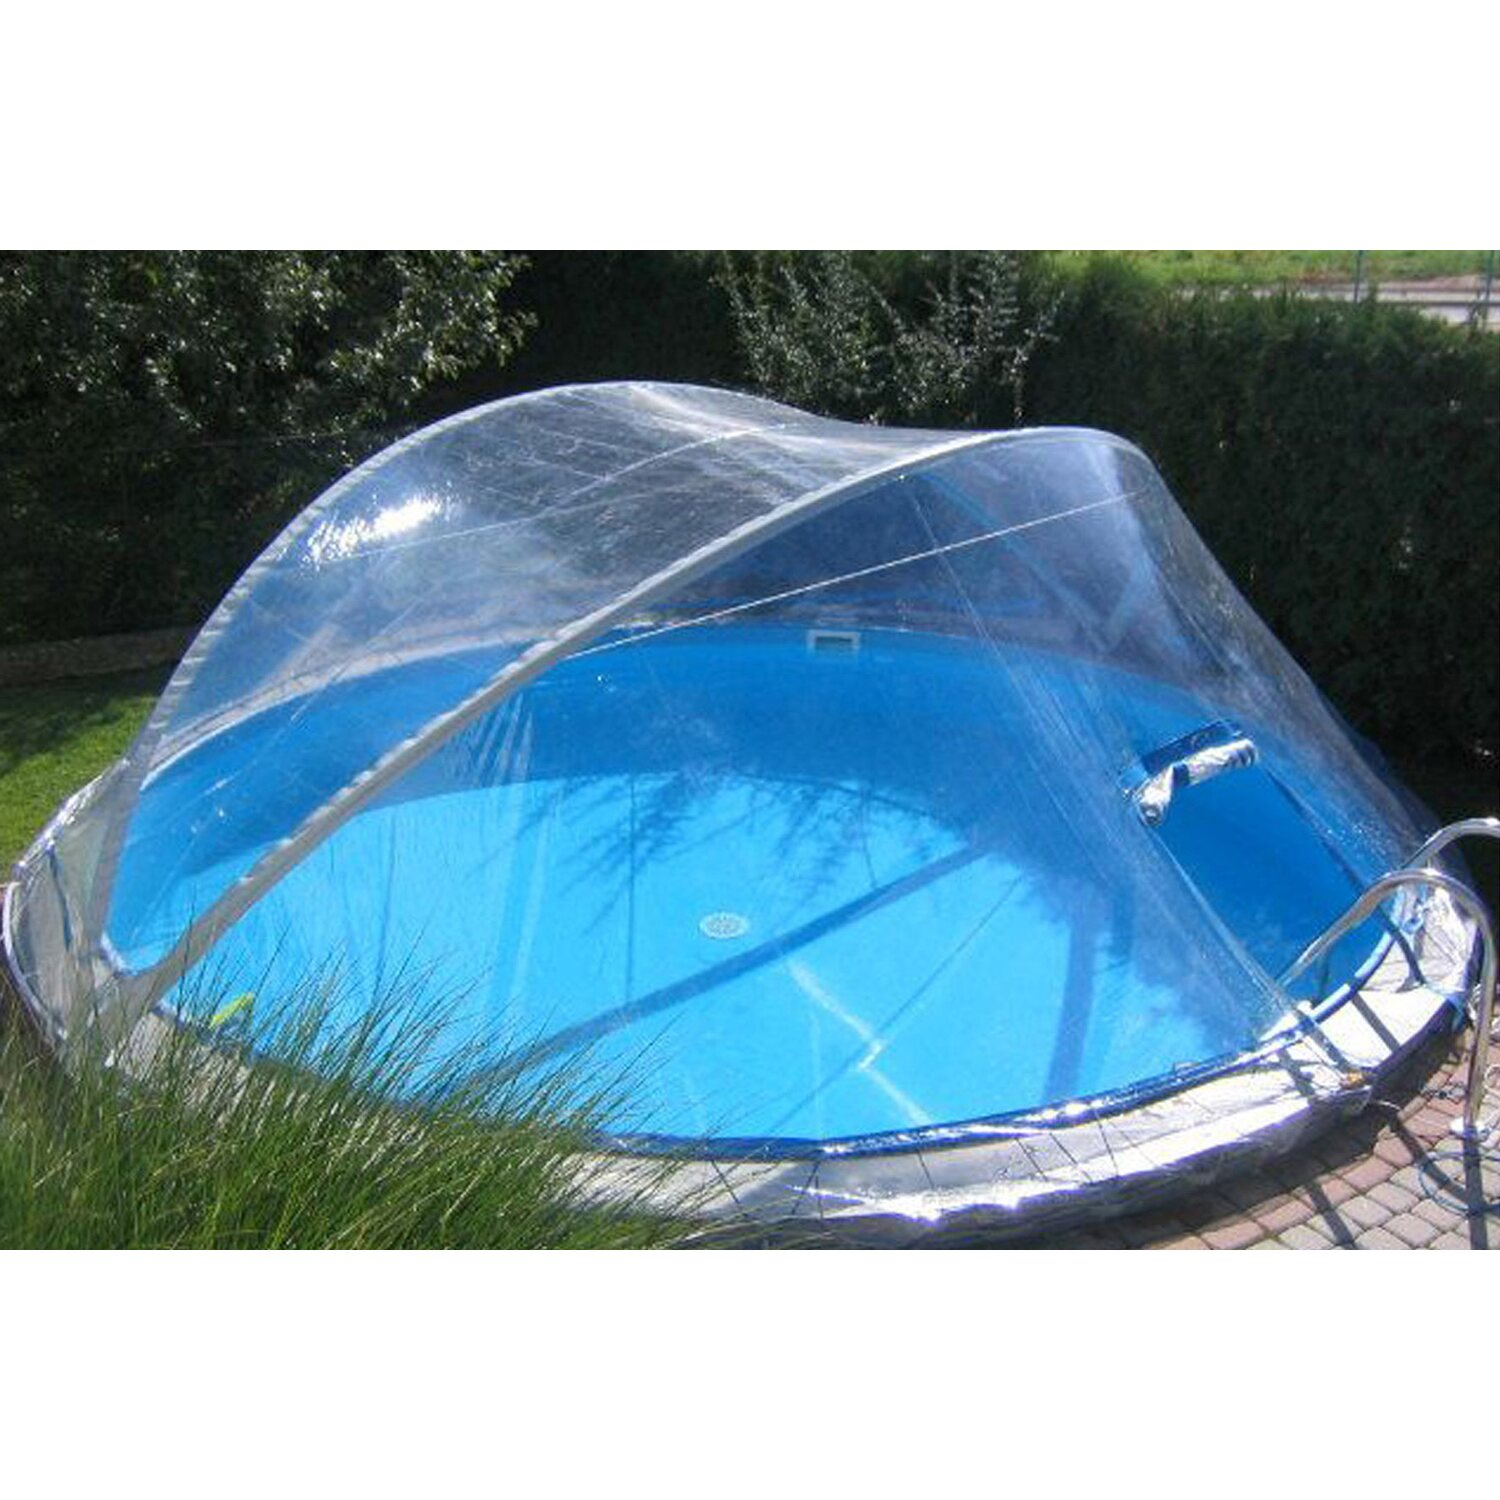 summer fun pool berdachung cabrio dome f r pools 200 cm kaufen bei obi. Black Bedroom Furniture Sets. Home Design Ideas